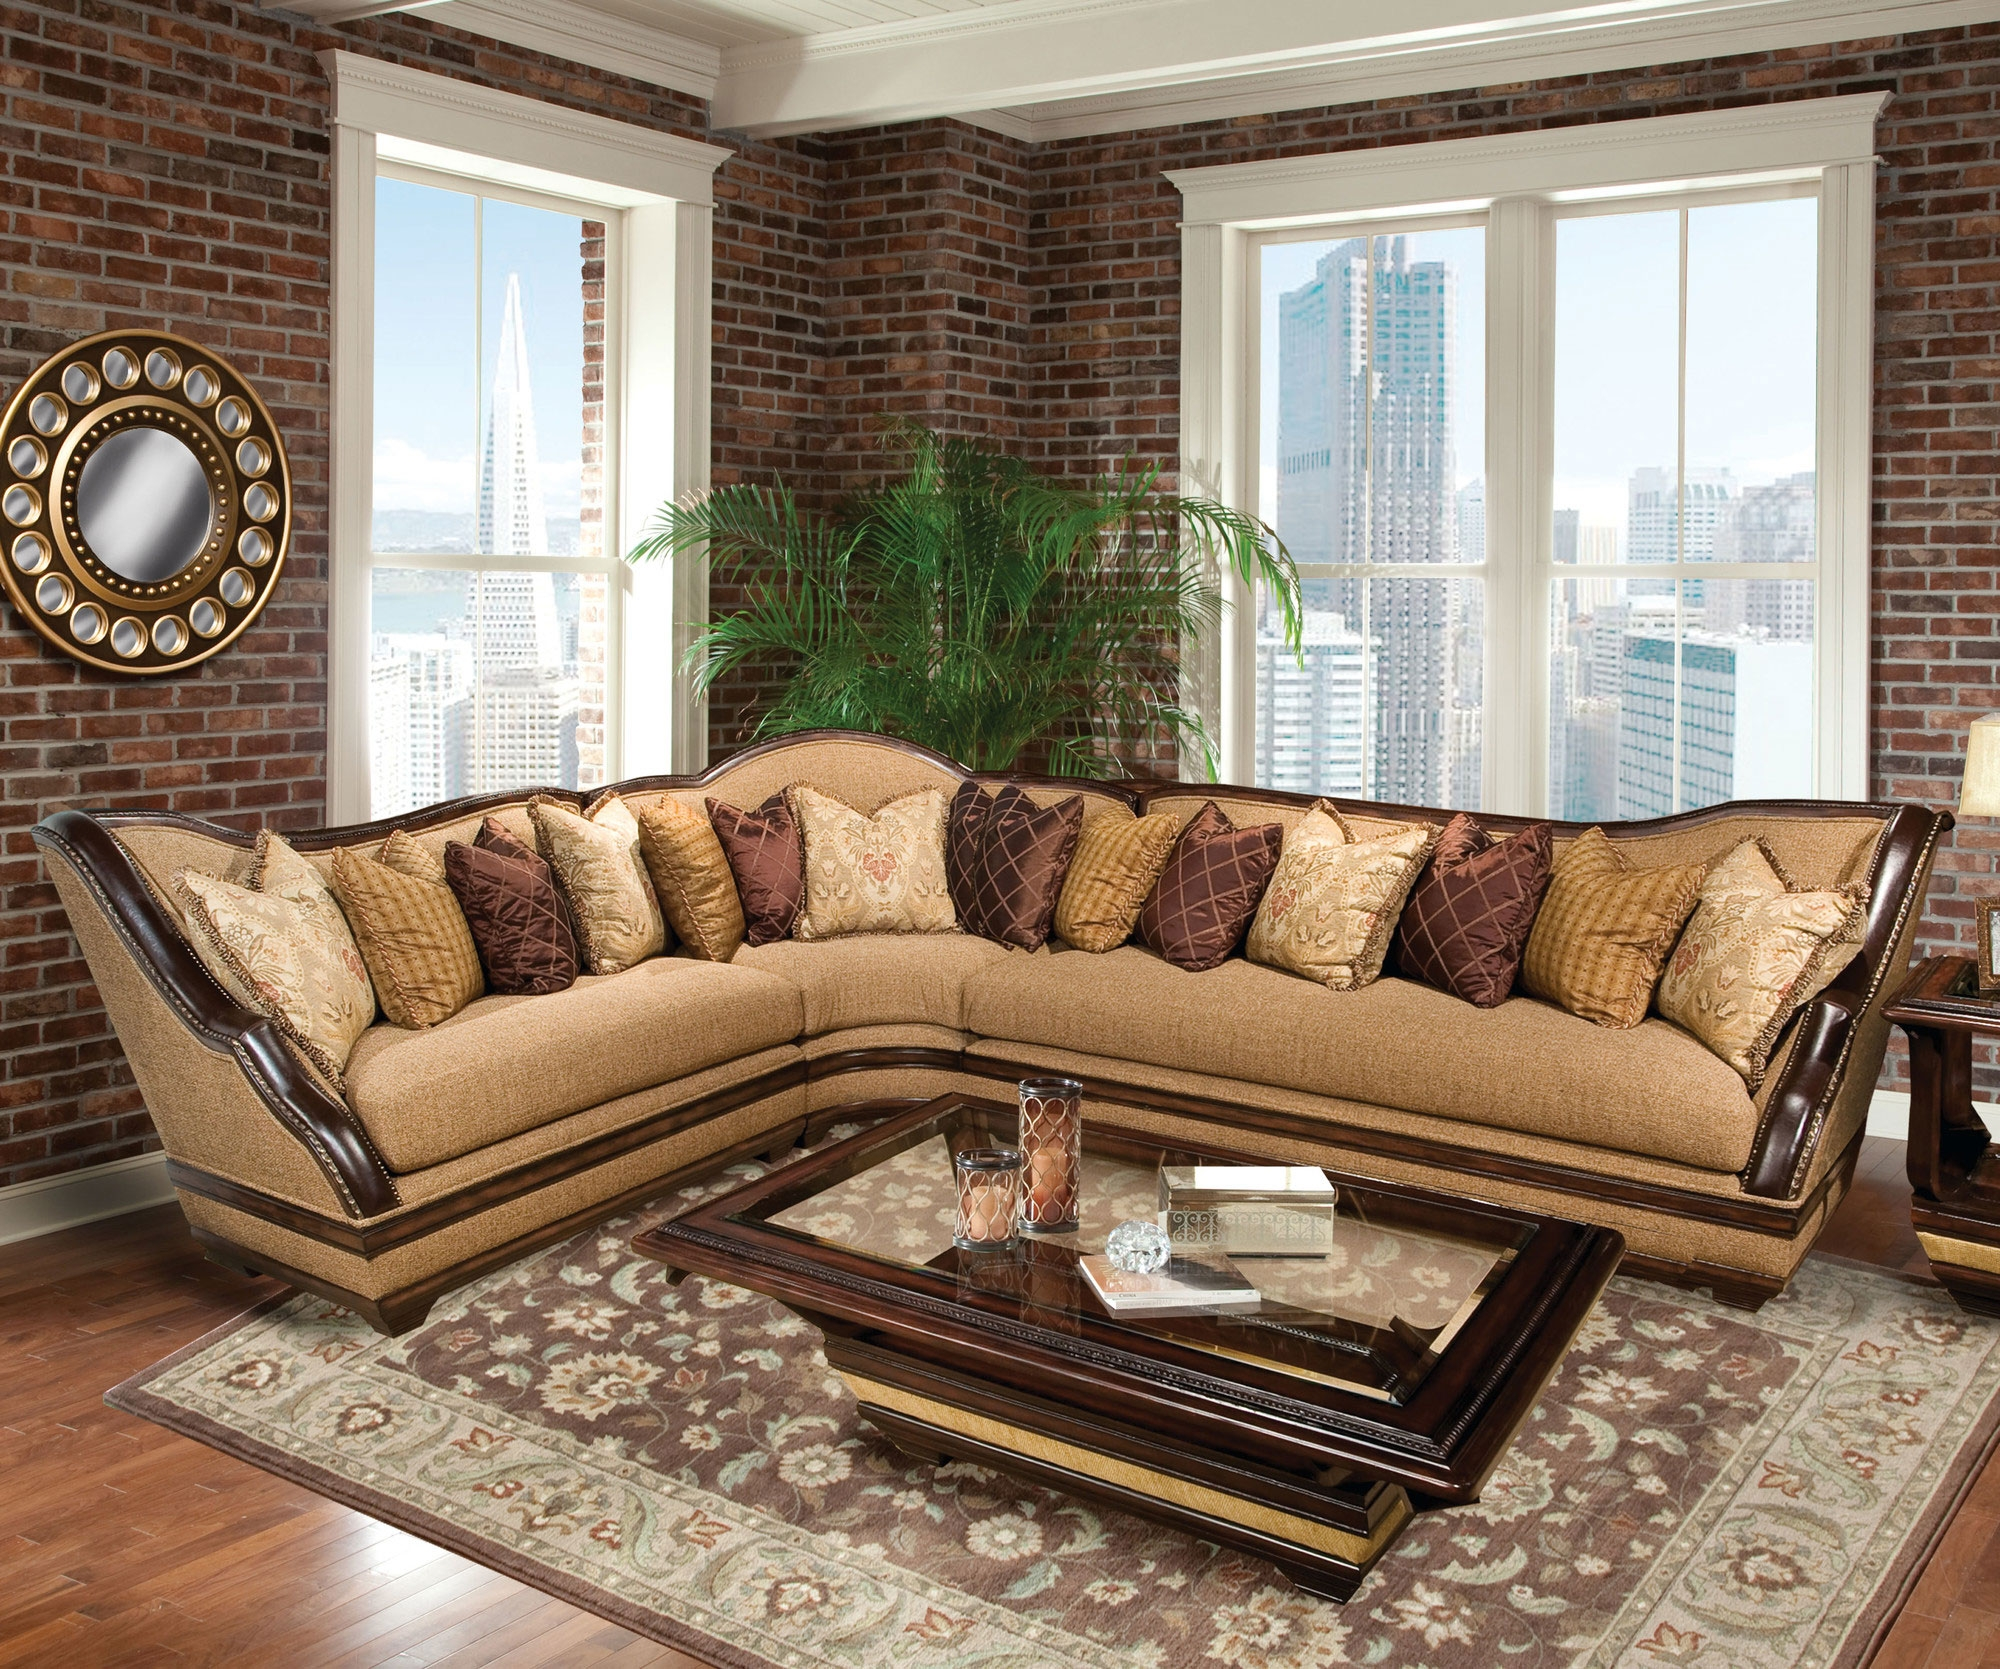 Modern Luxury Sectional Sofas 12 Ideas Of Expensive Sectional Sofas